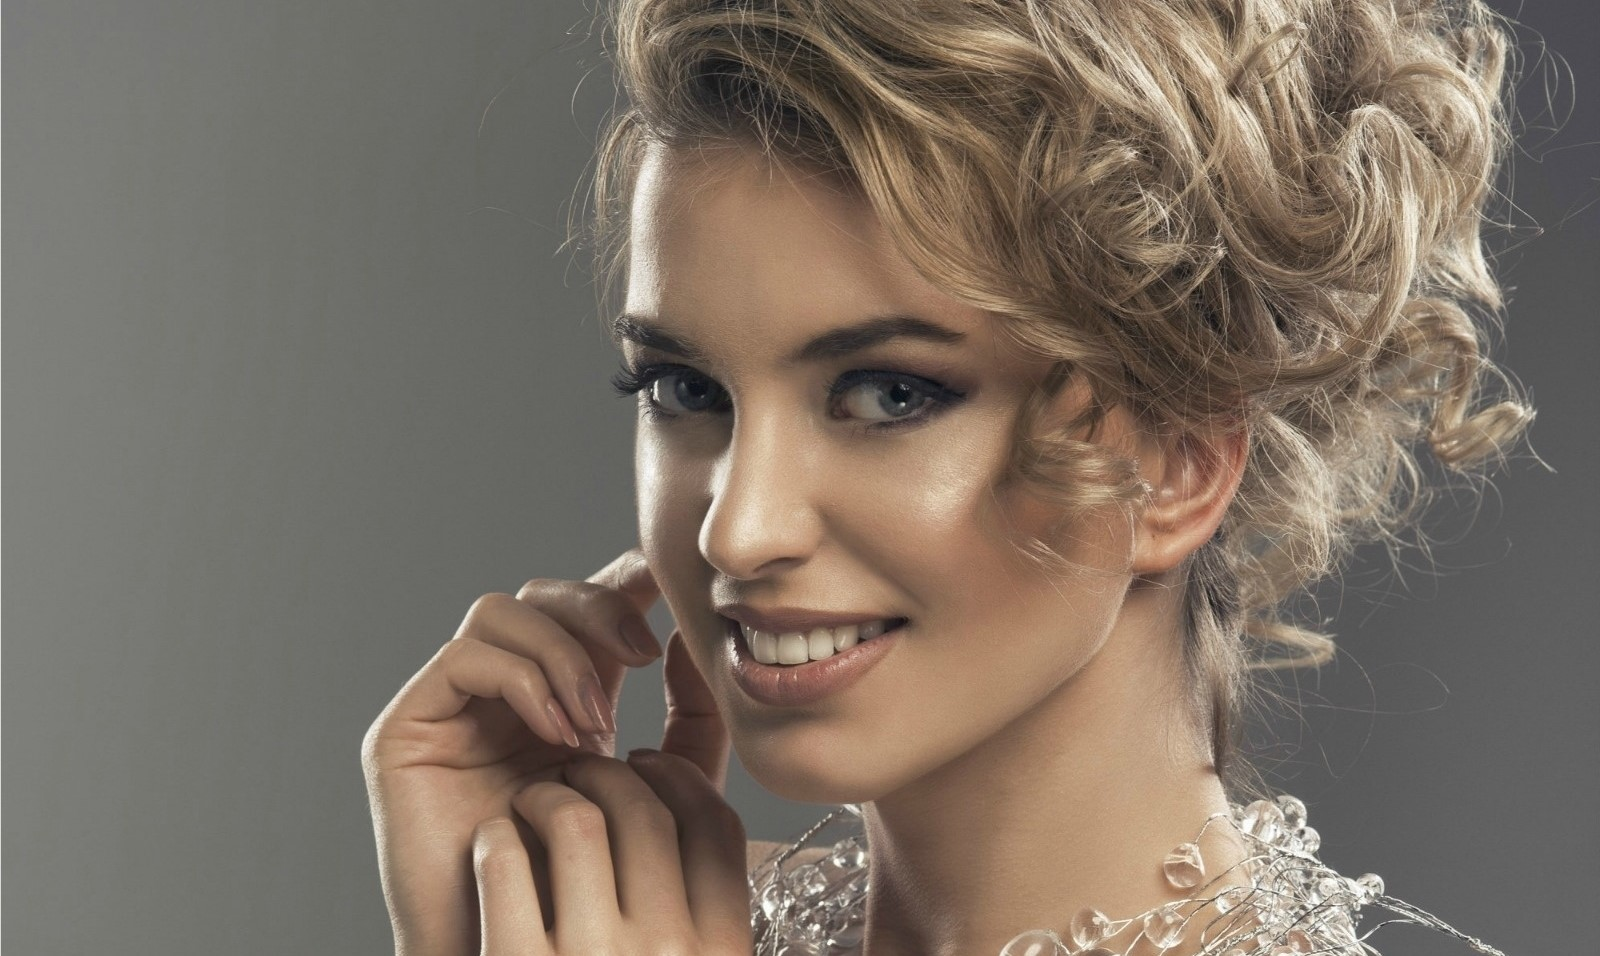 Easy-to-follow tutorial on jewellery makeup